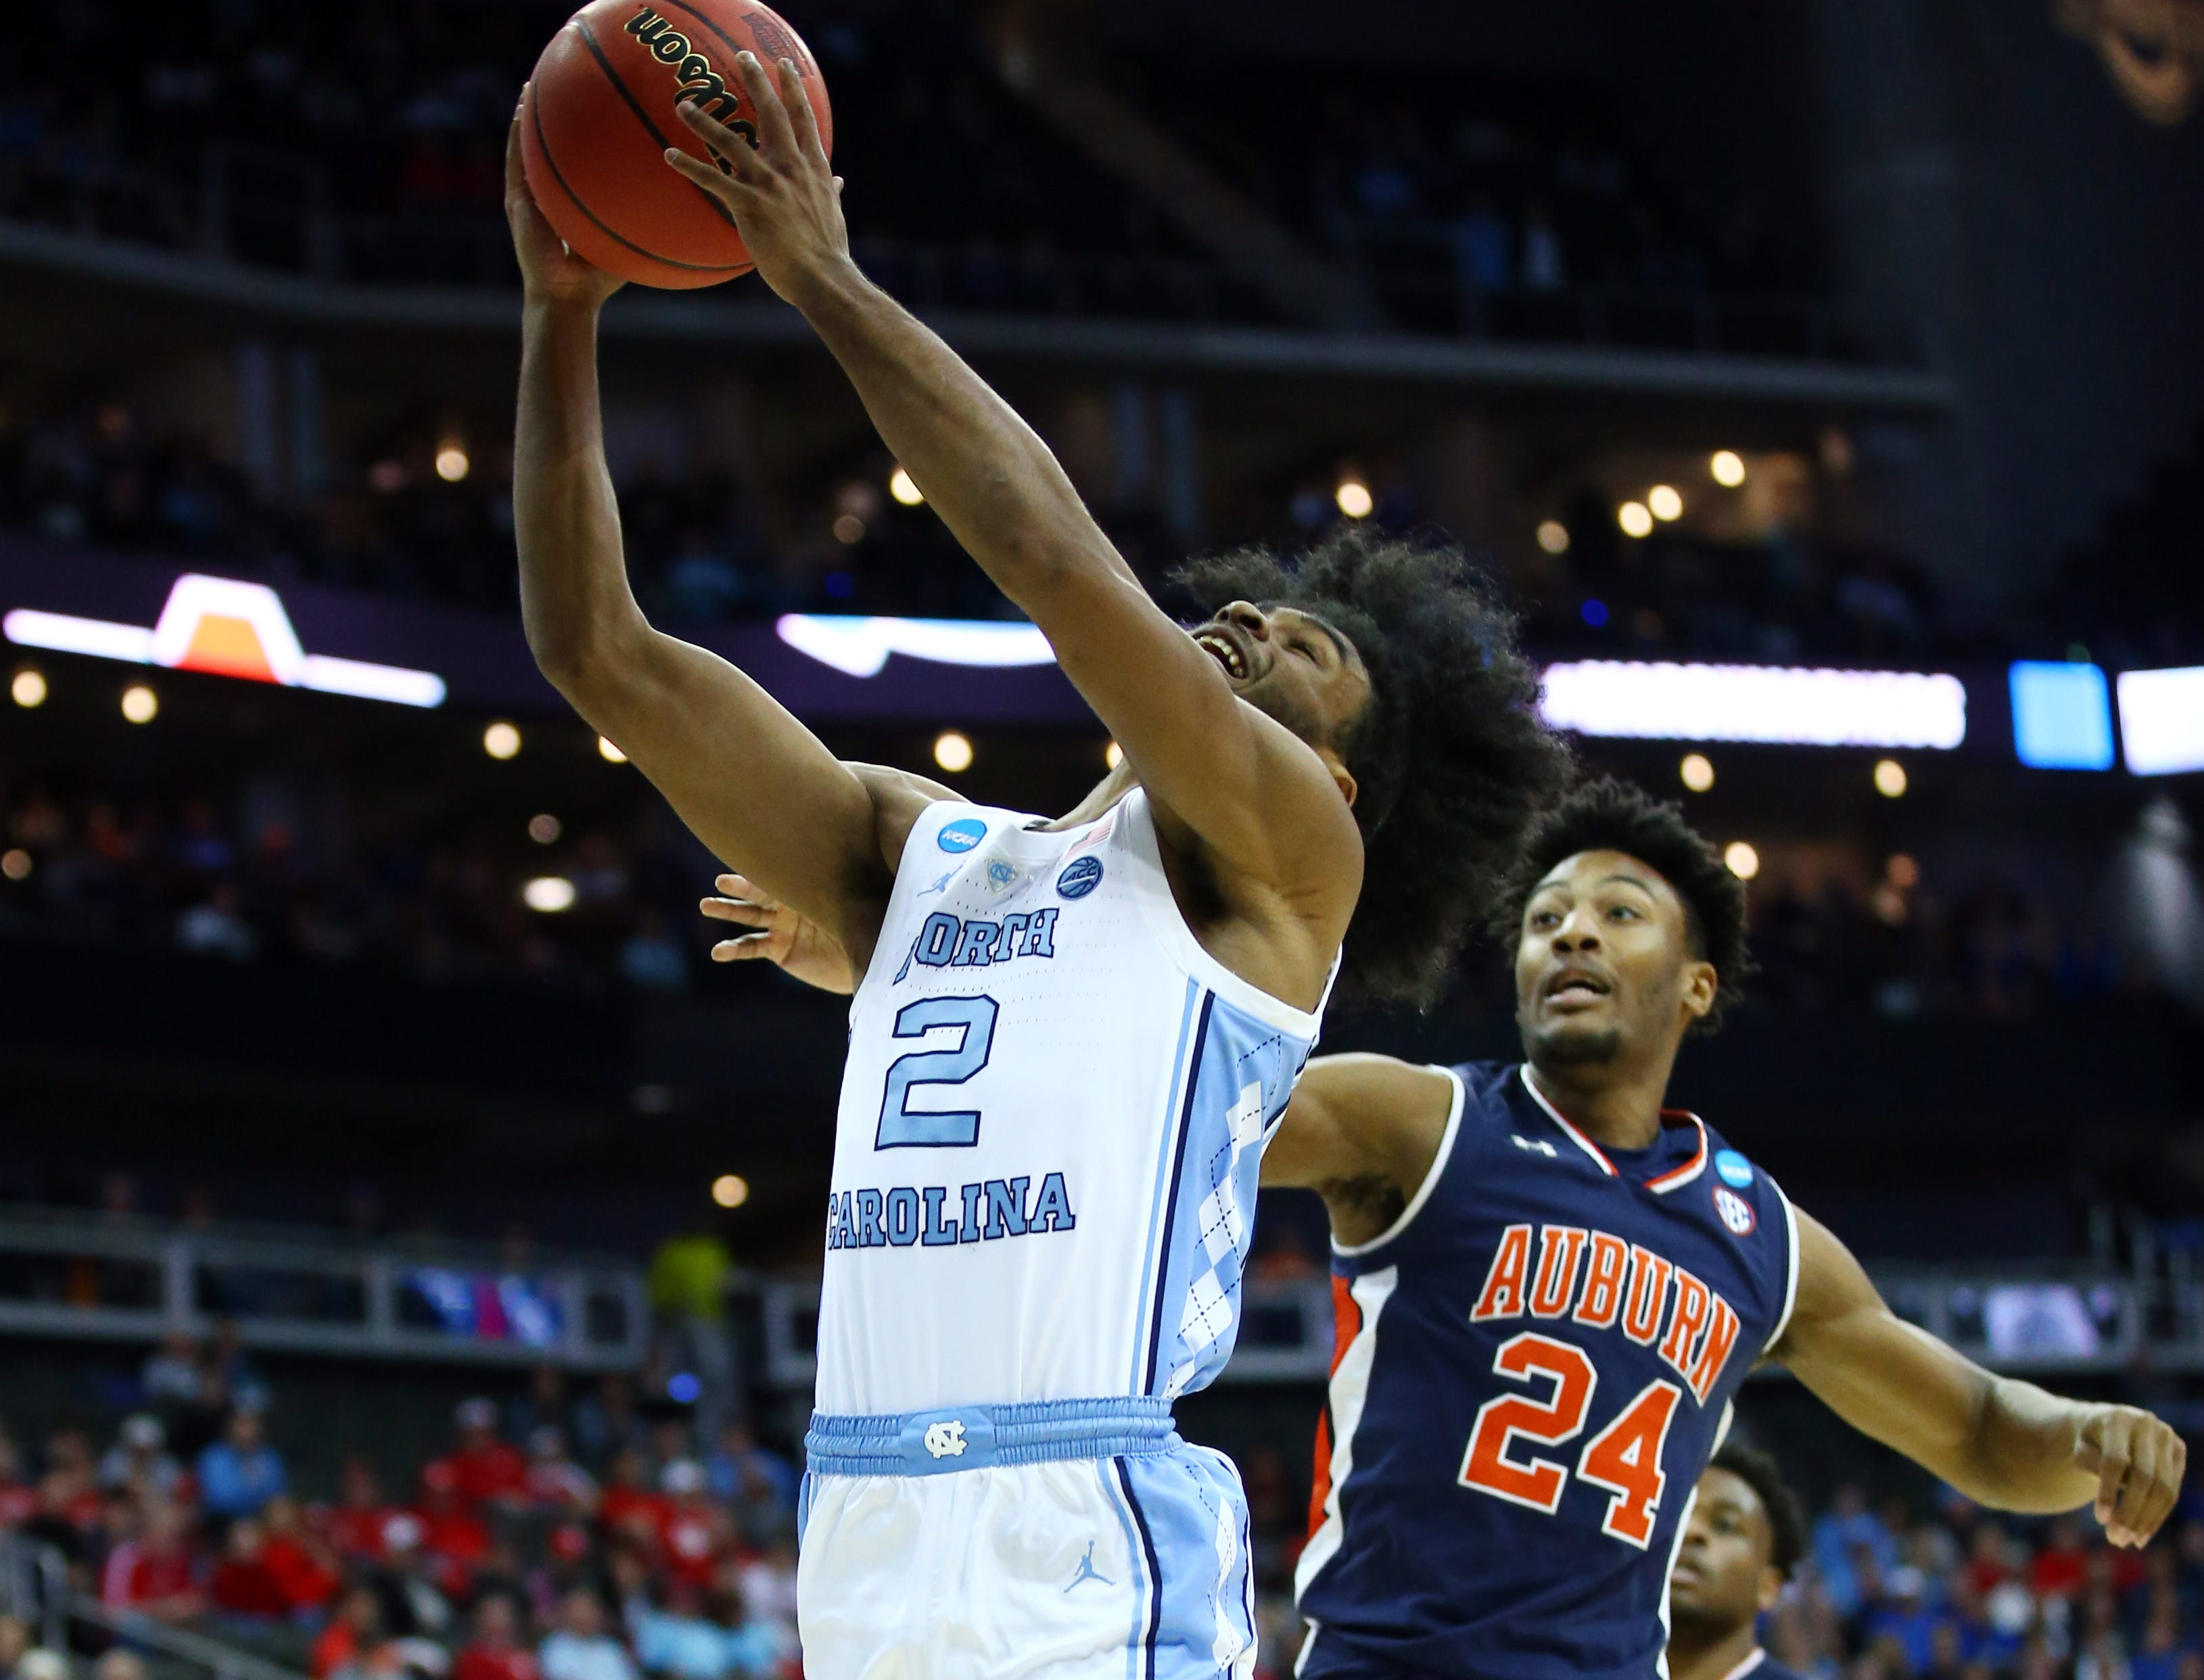 Mar 29, 2019; Kansas City, MO, United States; North Carolina Tar Heels guard Coby White (2) shoots against Auburn Tigers forward Anfernee McLemore (24) during the first half in the semifinals of the midwest regional of the 2019 NCAA Tournament at Sprint Center. Mandatory Credit: Jay Biggerstaff-USA TODAY Sports